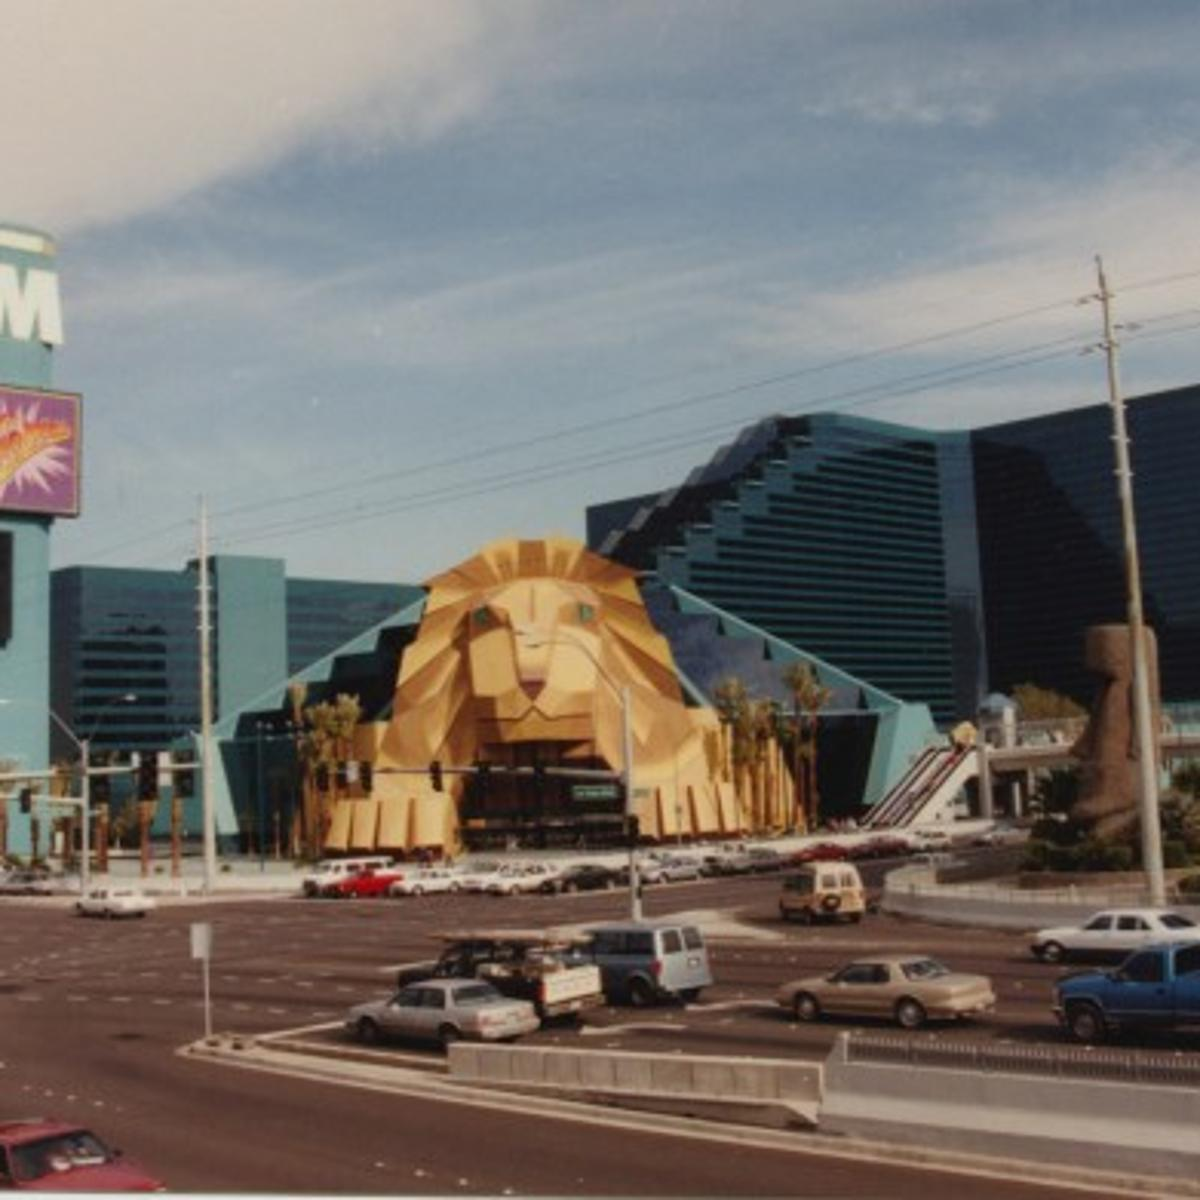 Offbeat Las Vegas Mgm Grand Hotel And Casino Losing Trademark Live Lions Offbeat With Phil Potempa Nwitimes Com